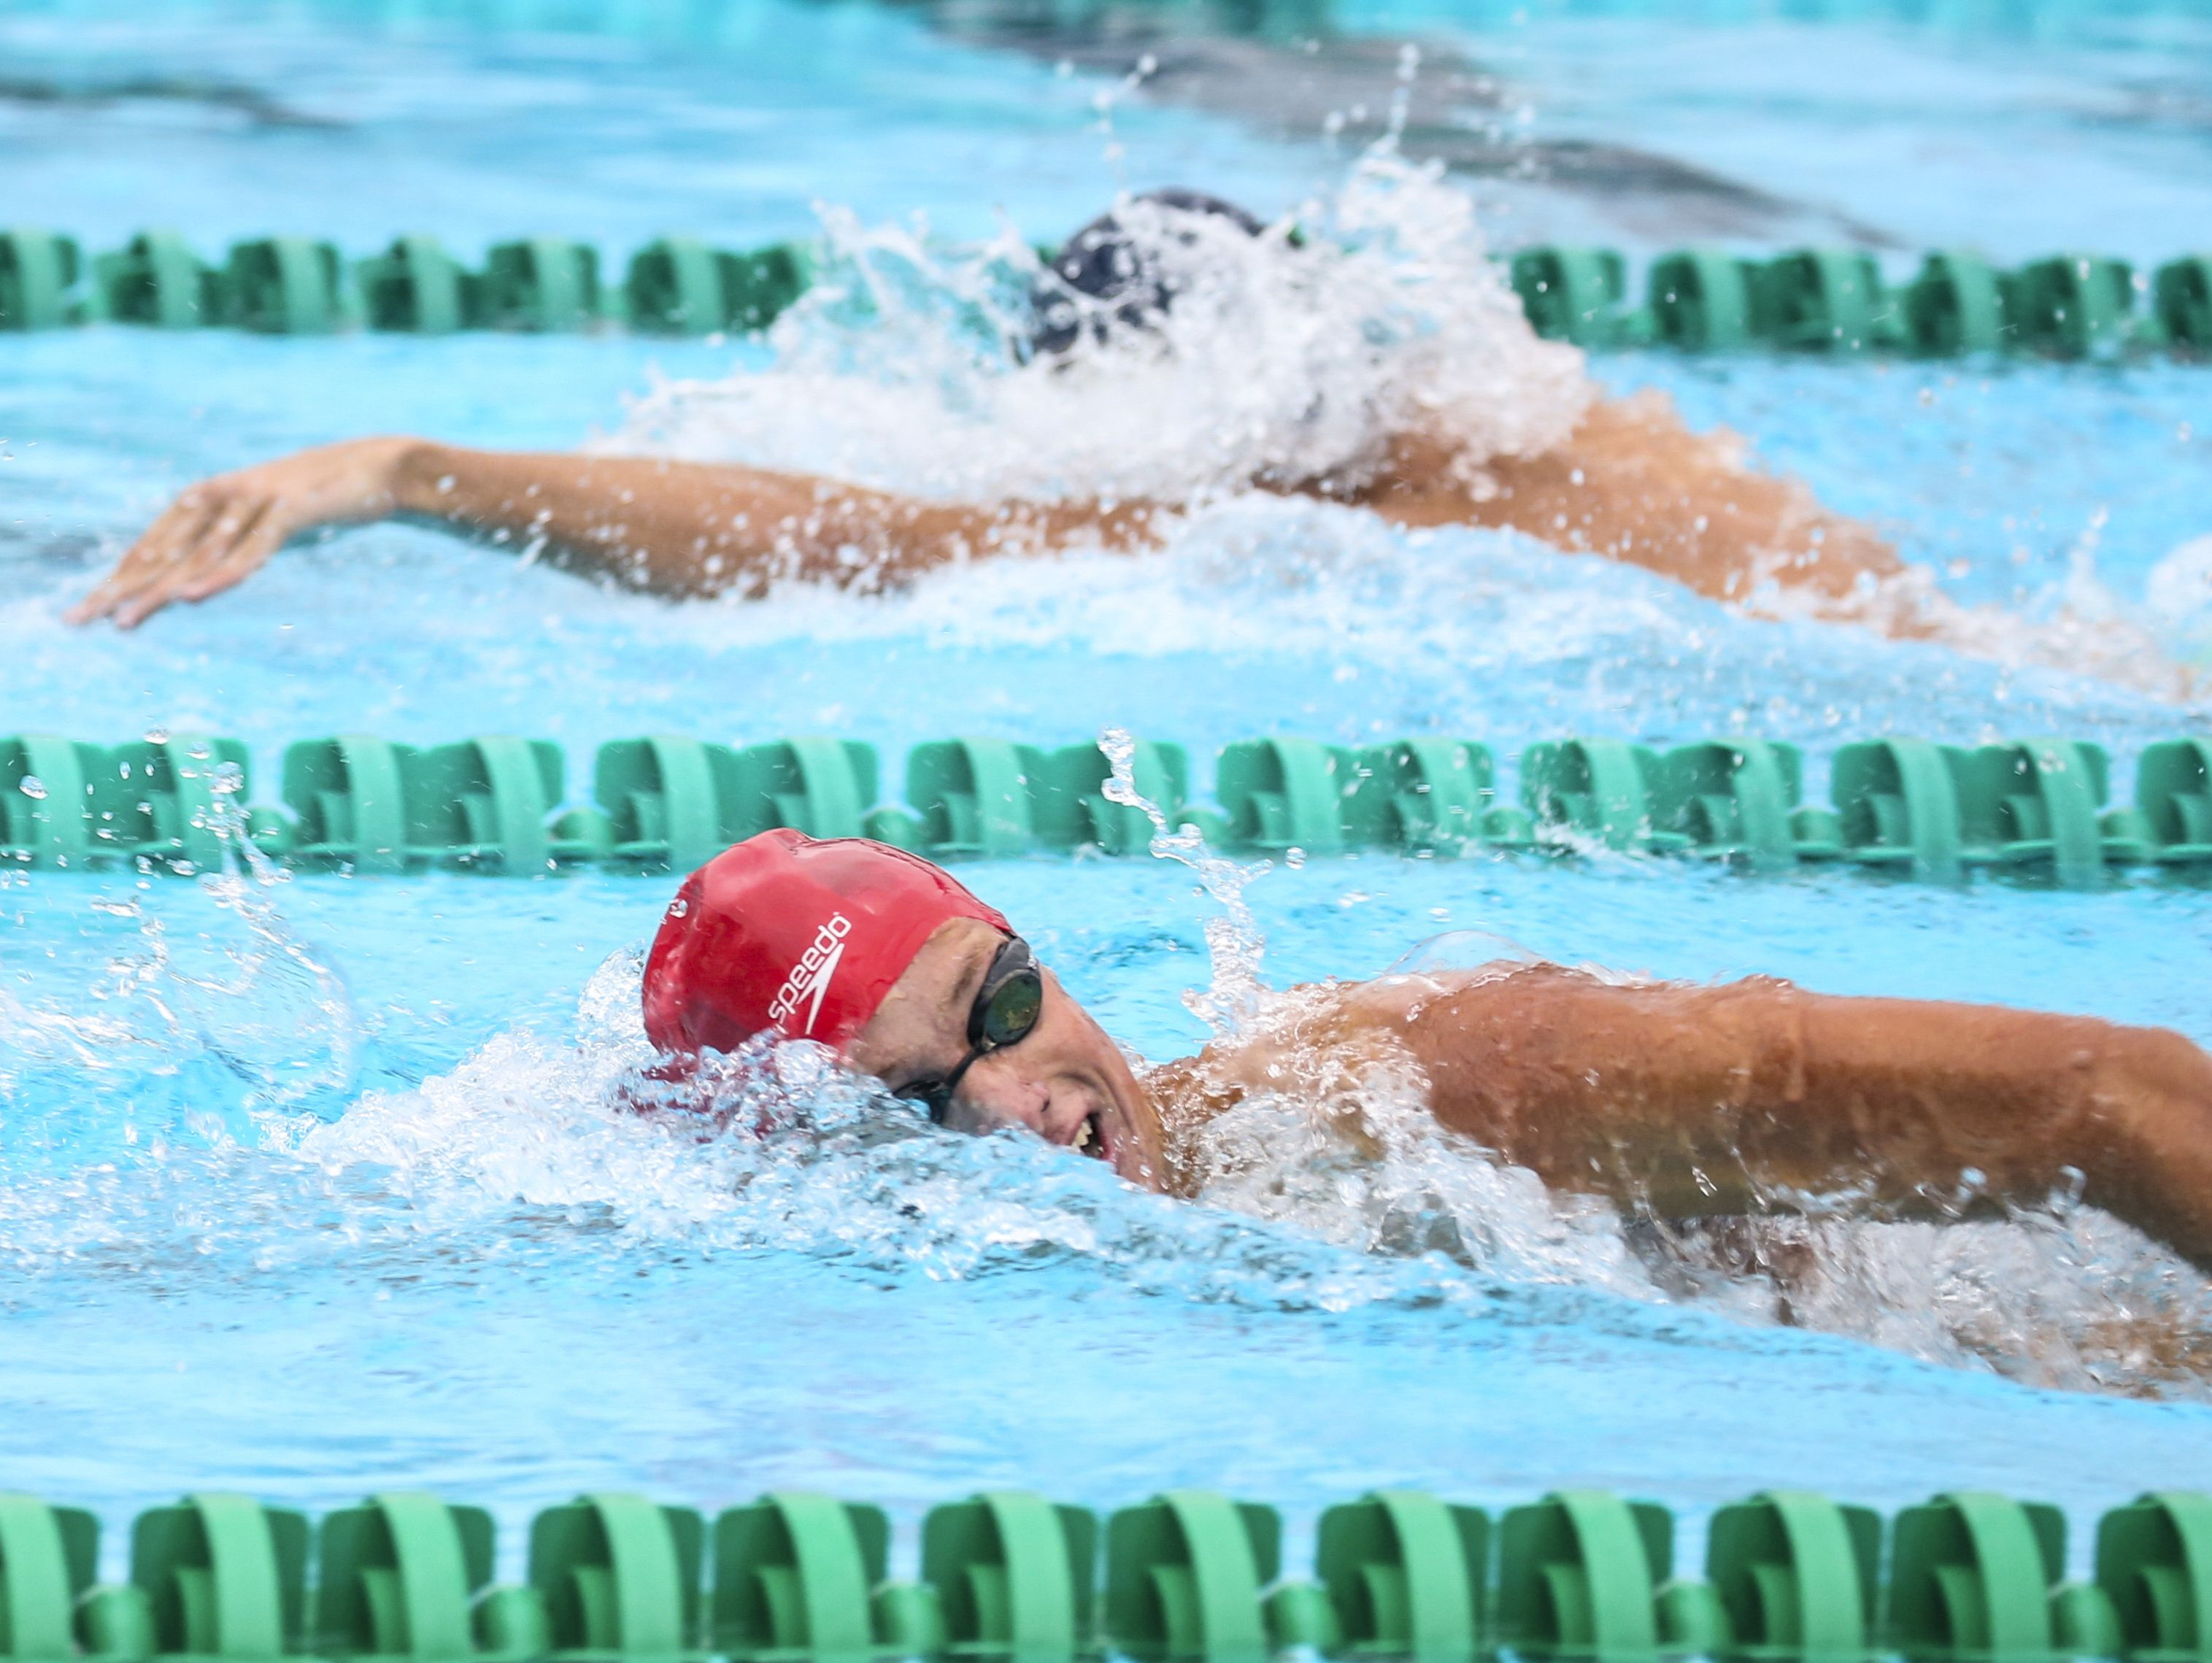 Clay Riemenschneider Fort Myers, won the third heat of the 200 yard freestyle during the Region 3A-3 swimming at FGCU Aquatic Center.